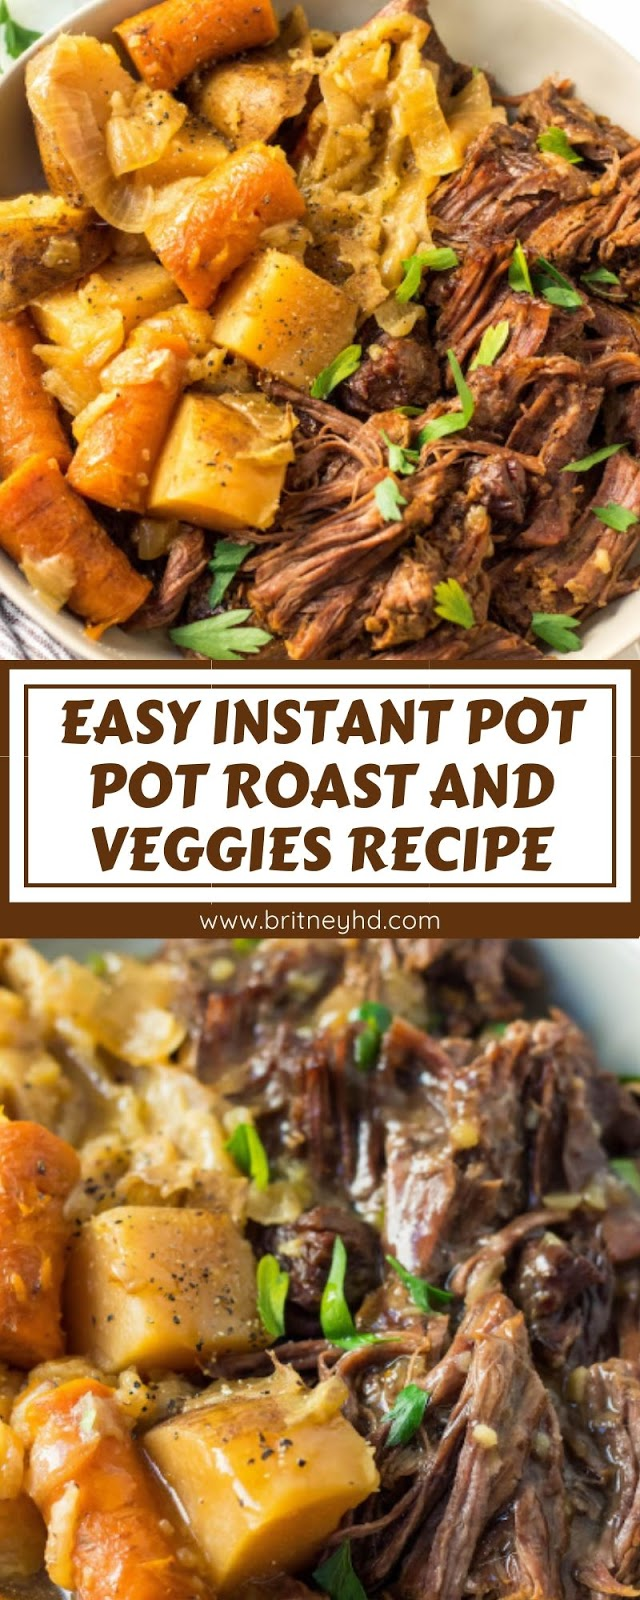 EASY INSTANT POT POT ROAST AND VEGGIES RECIPE